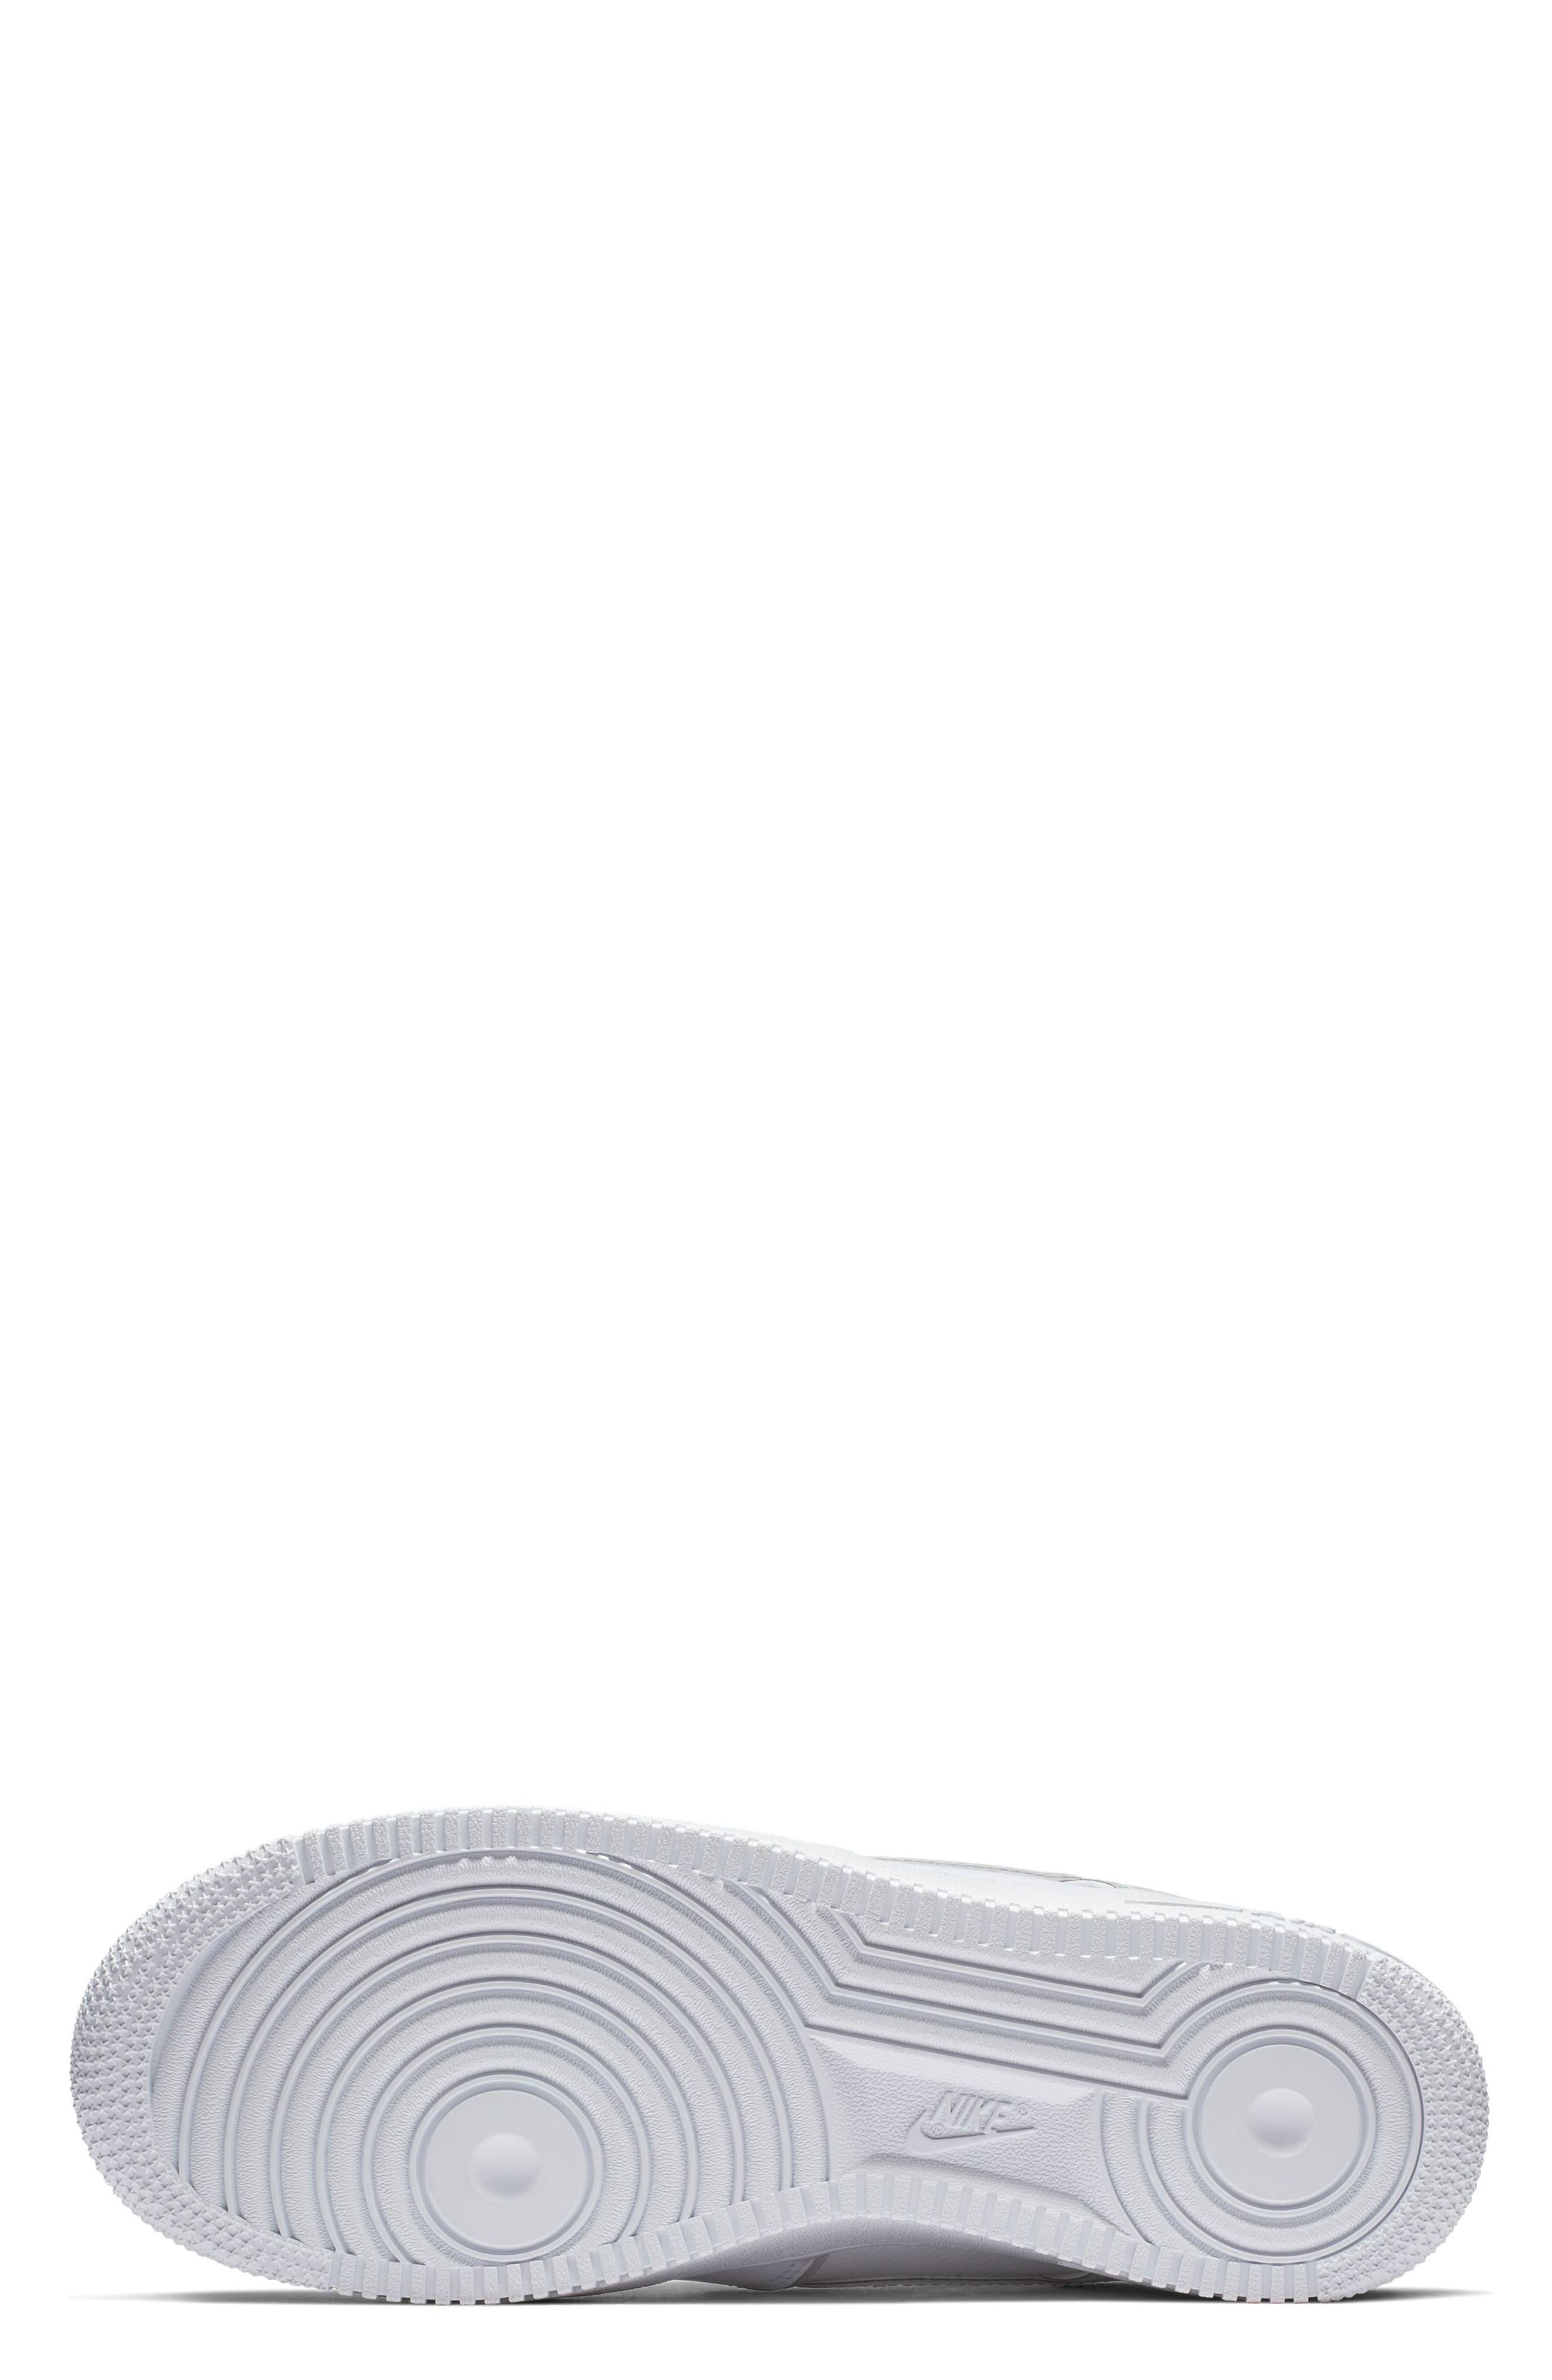 Air Force 1 '07 LV8 4 Sneaker,                             Alternate thumbnail 5, color,                             WHITE/ WHITE/ WHITE